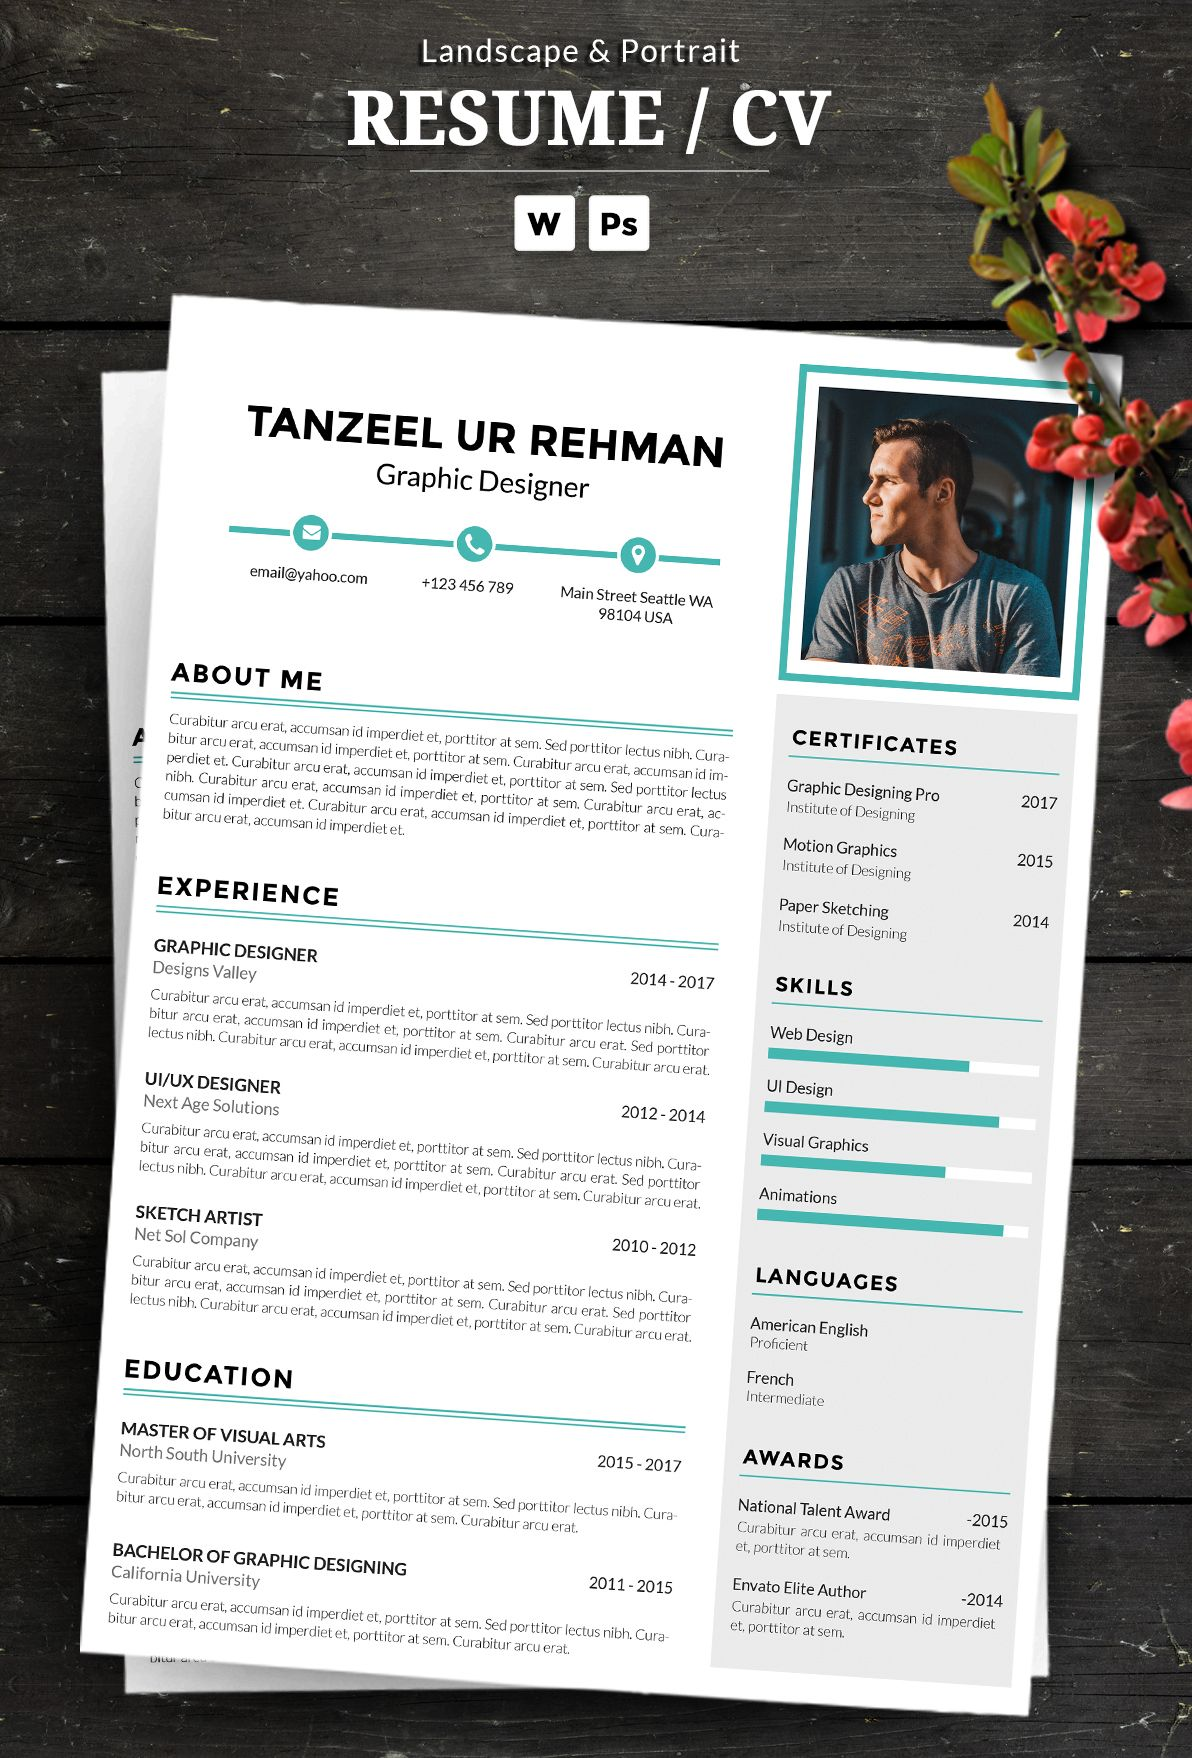 An Attractive Resume Cv Template With Super Clean And Modern Look It Includes Single Page Resume And Cover Cv Resume Template Resume Cv Resume Design Template